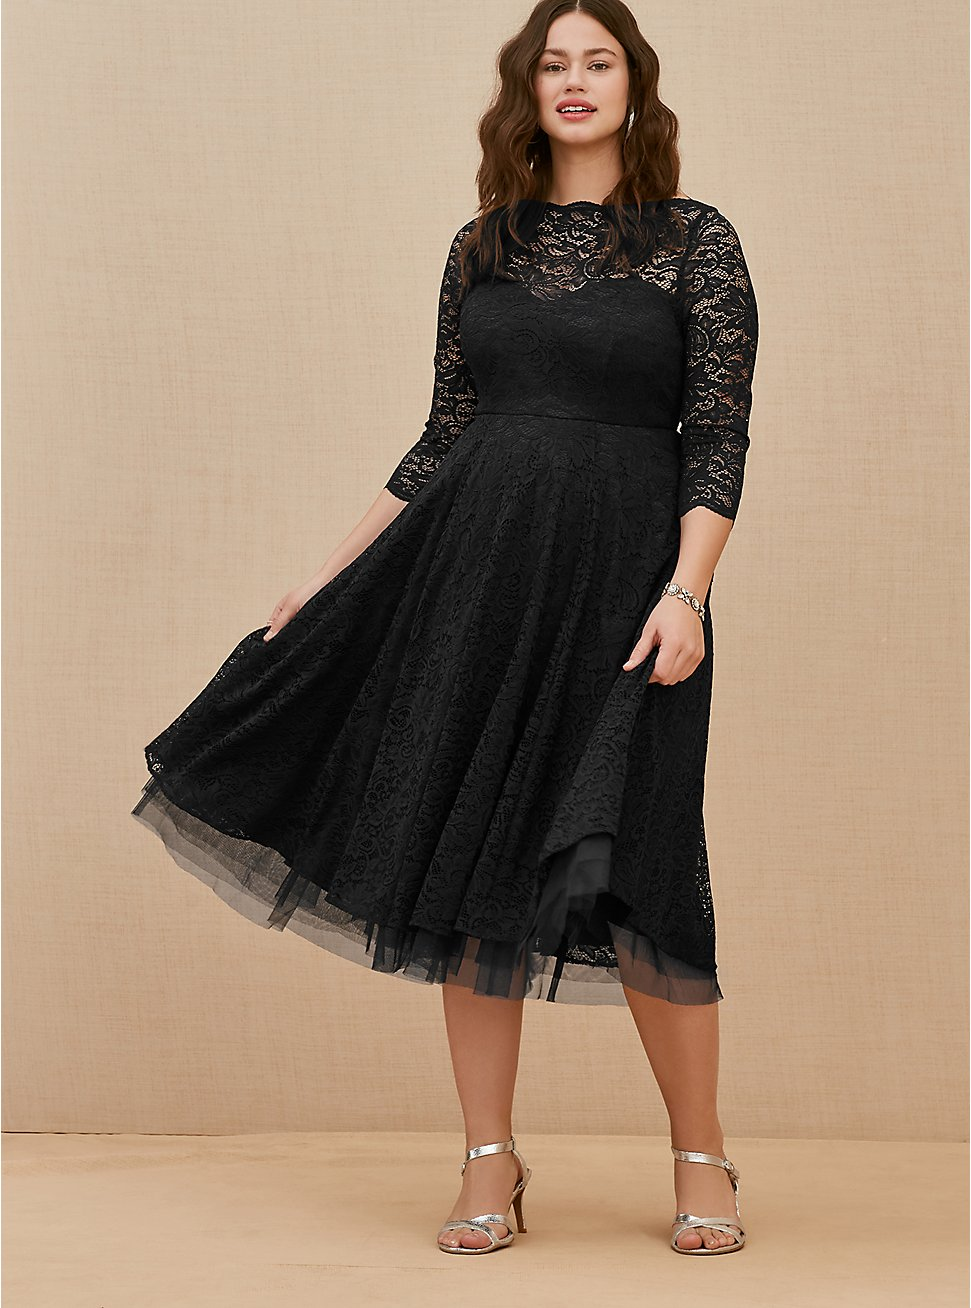 Special Occasion Black Lace Midi Dress